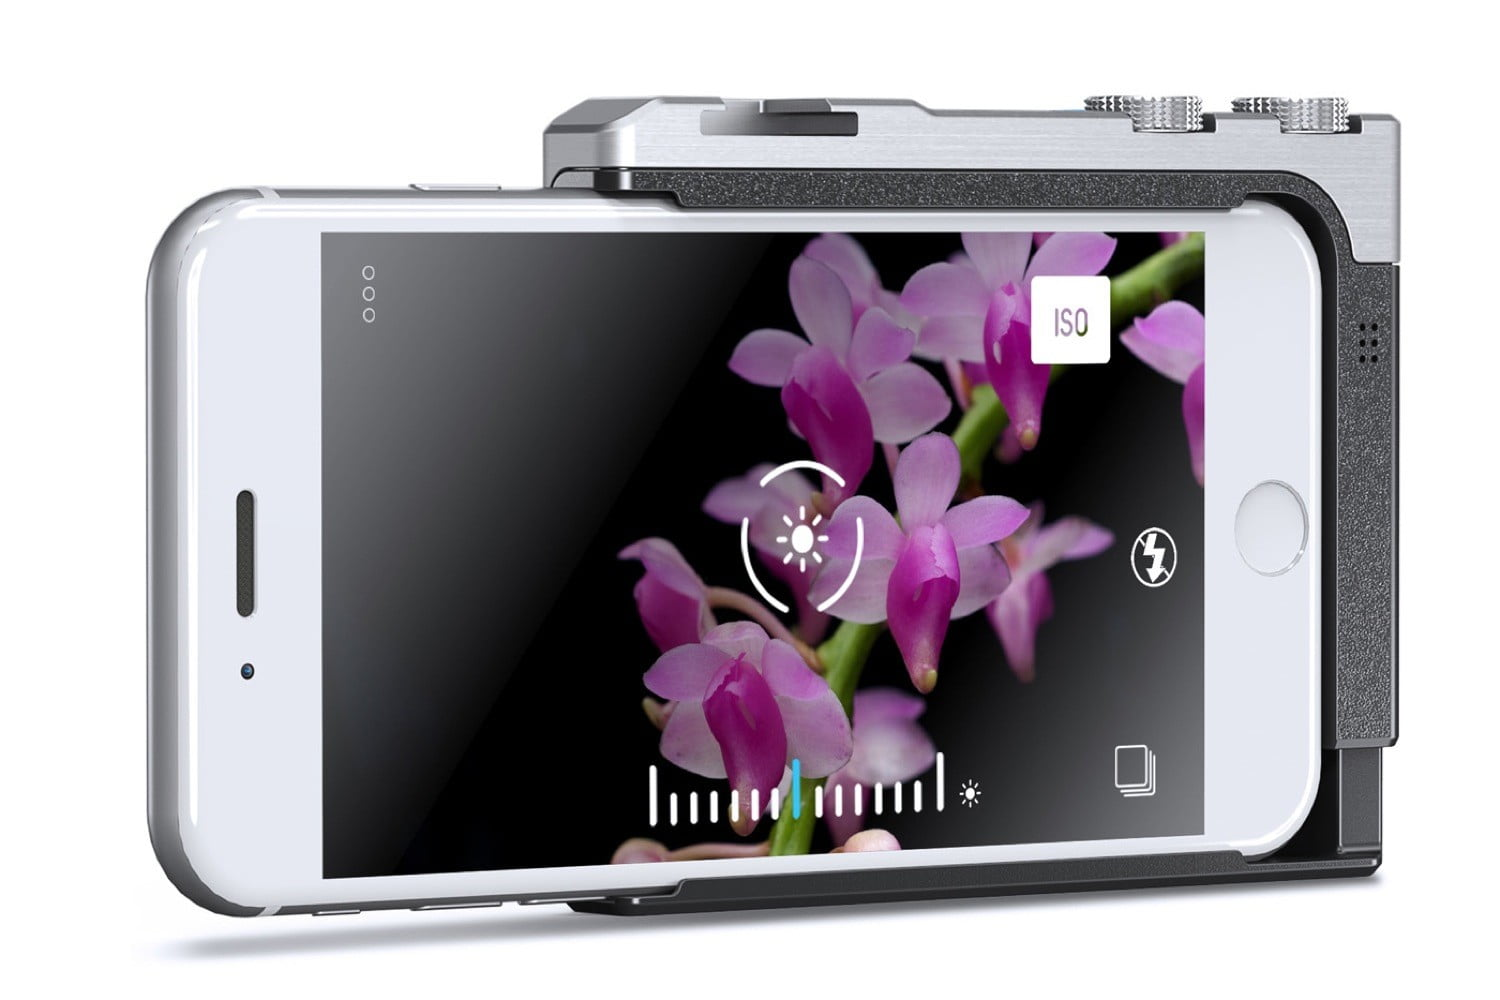 pictar iphone case provides dslr like shooting experience miggo 3